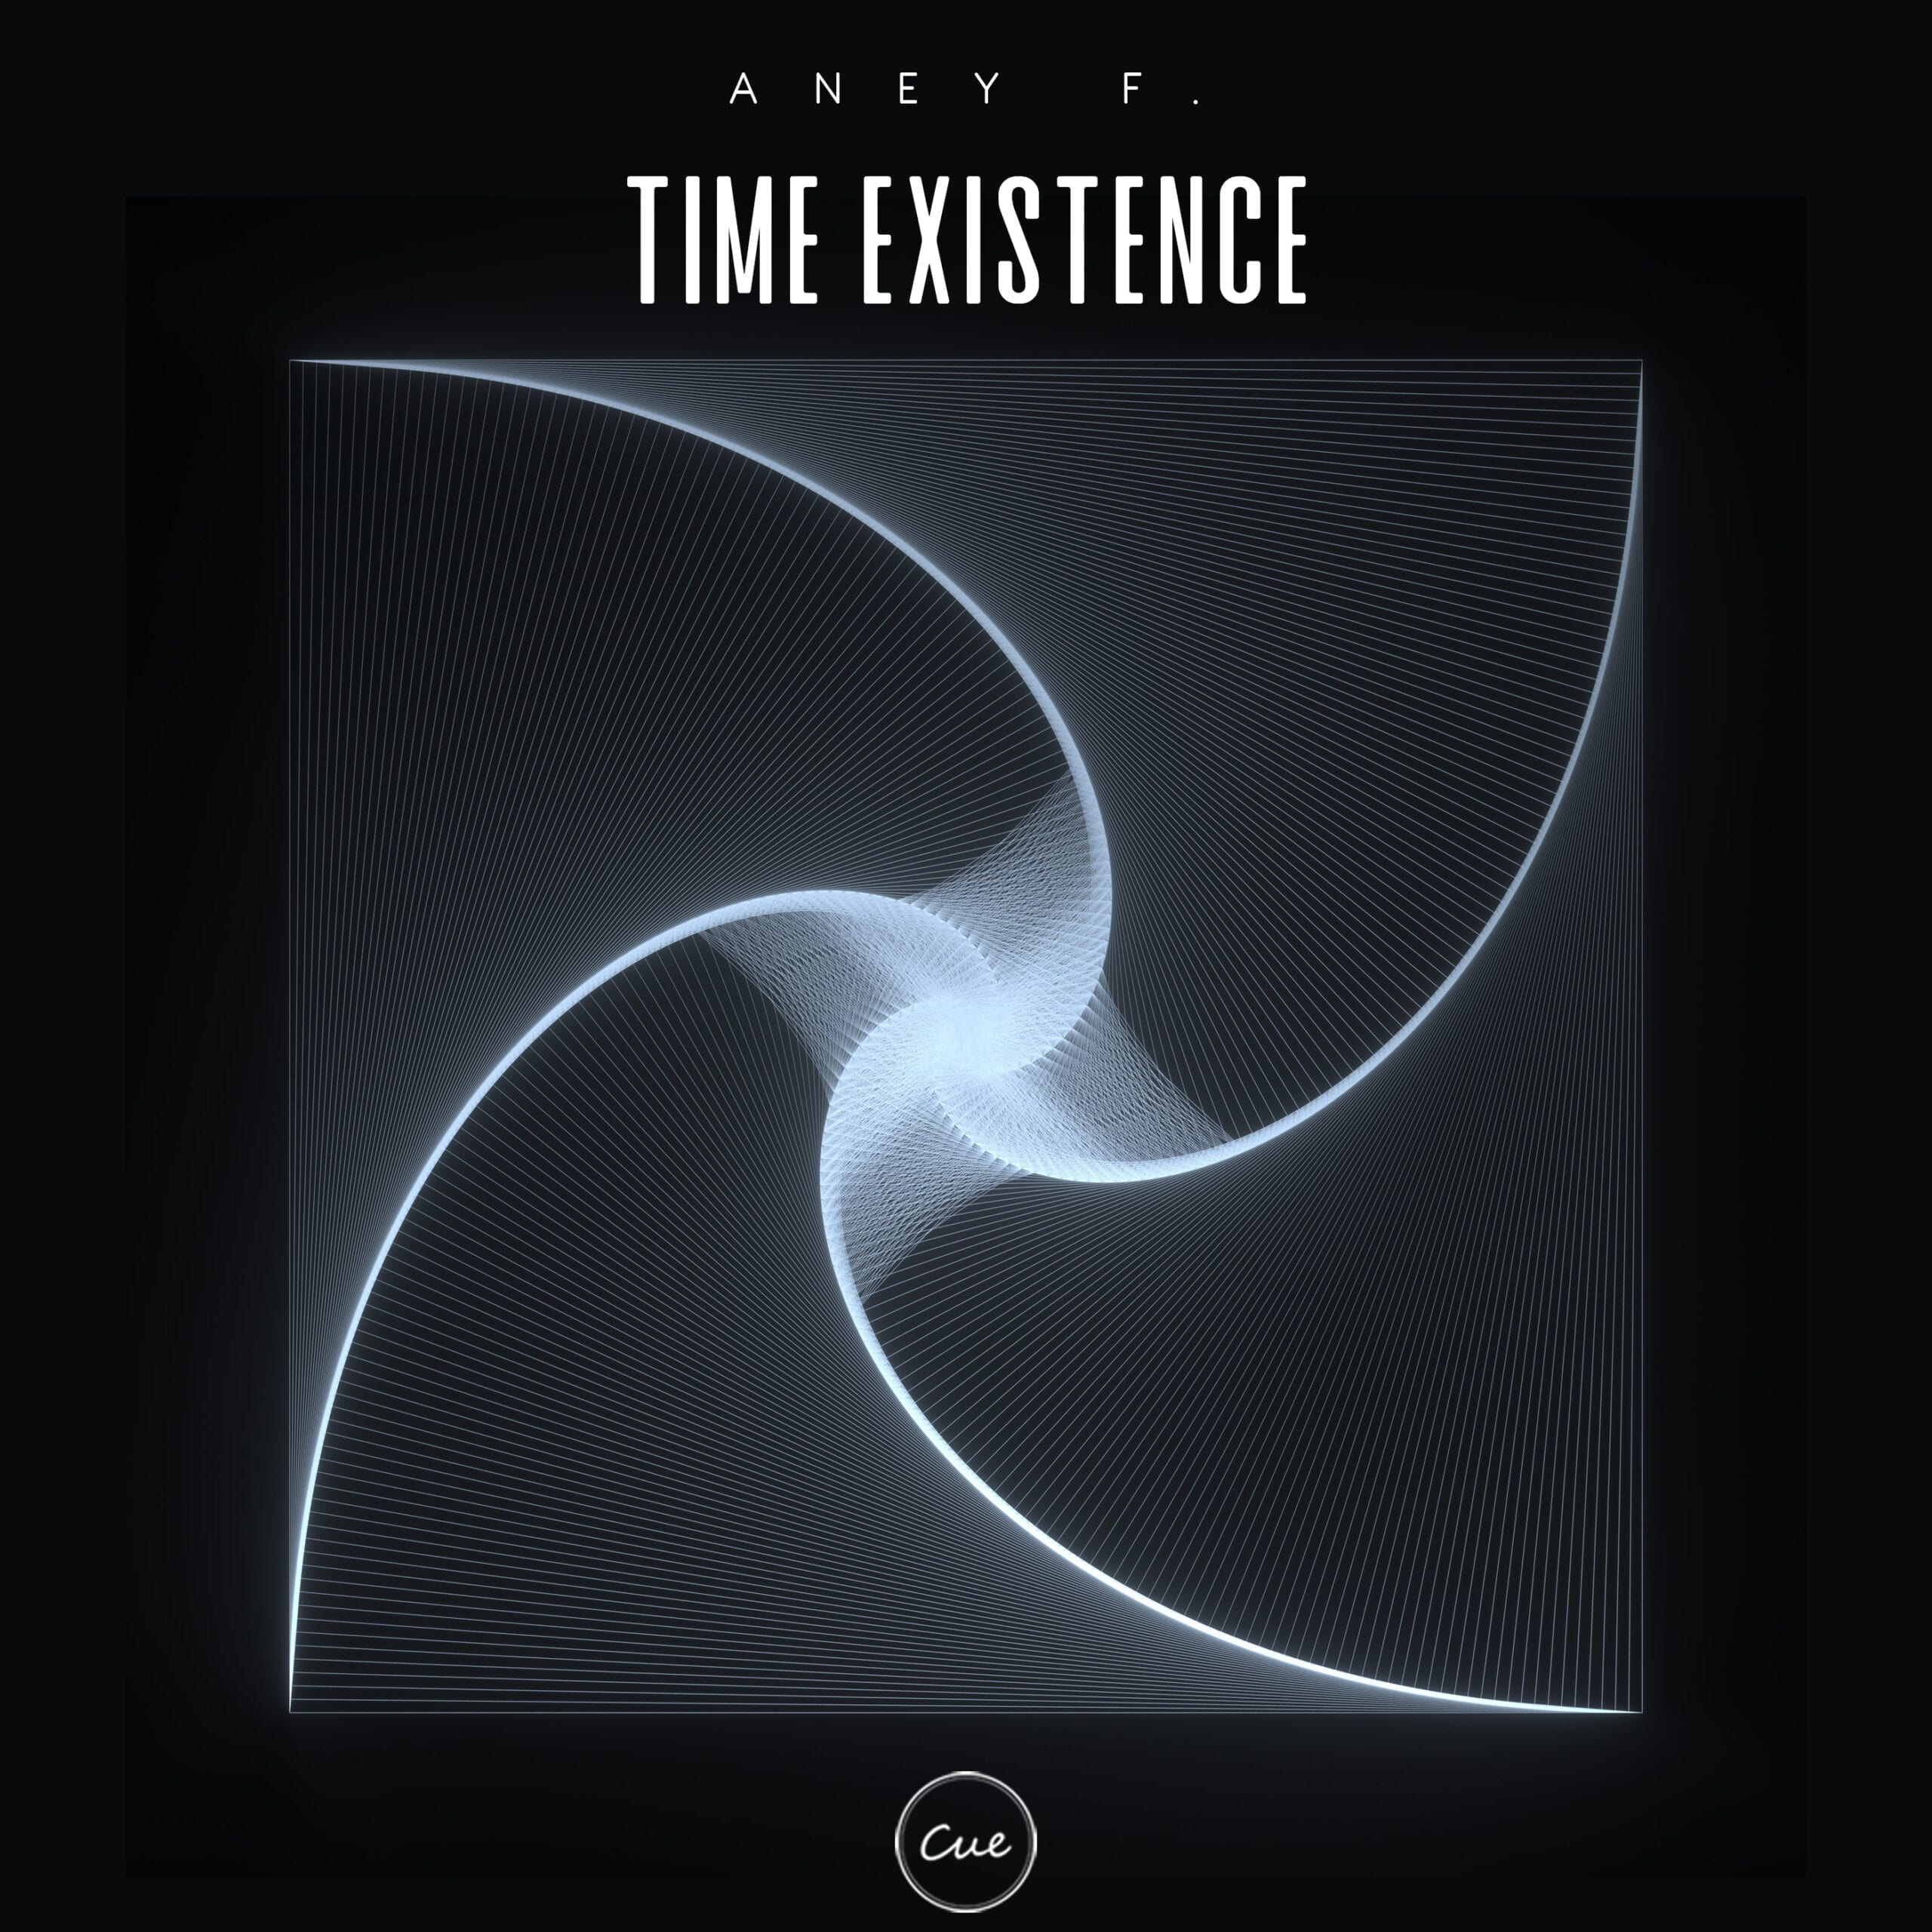 CUE022 Aney F. - Time Existence [CUE]